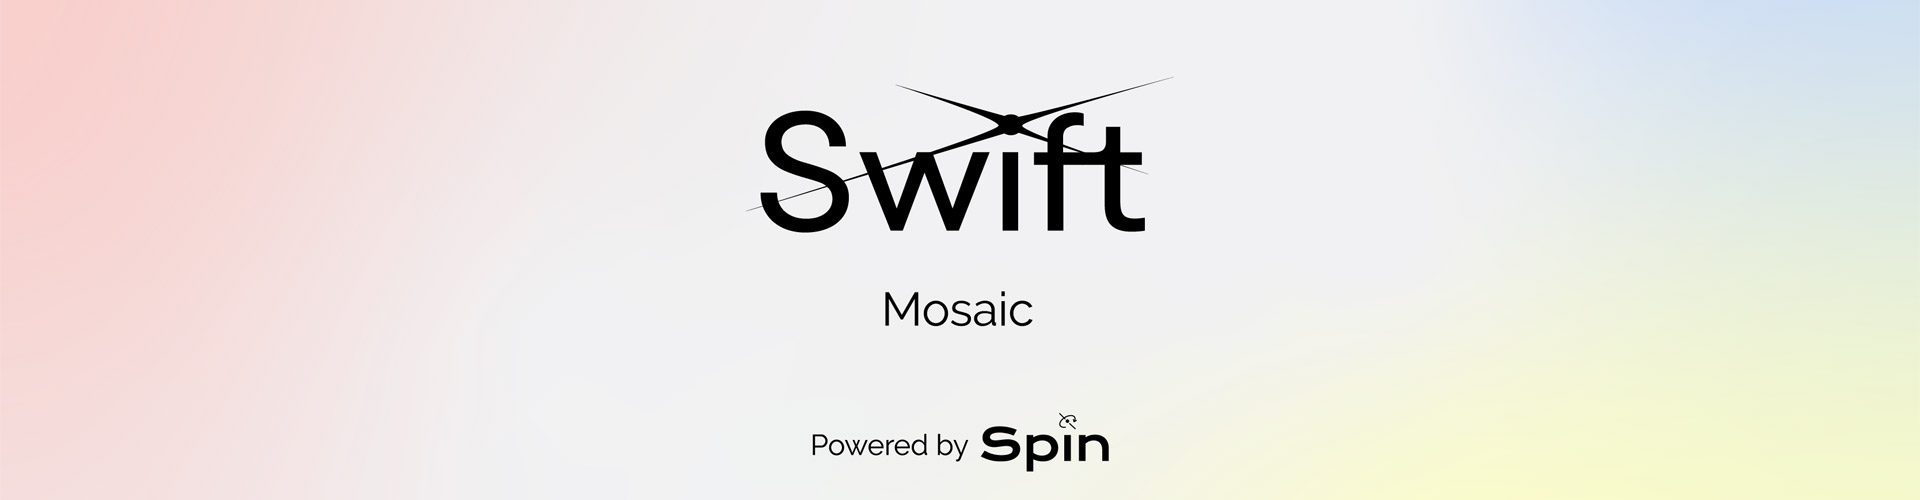 Pre-Design Tools | Swift By Spin